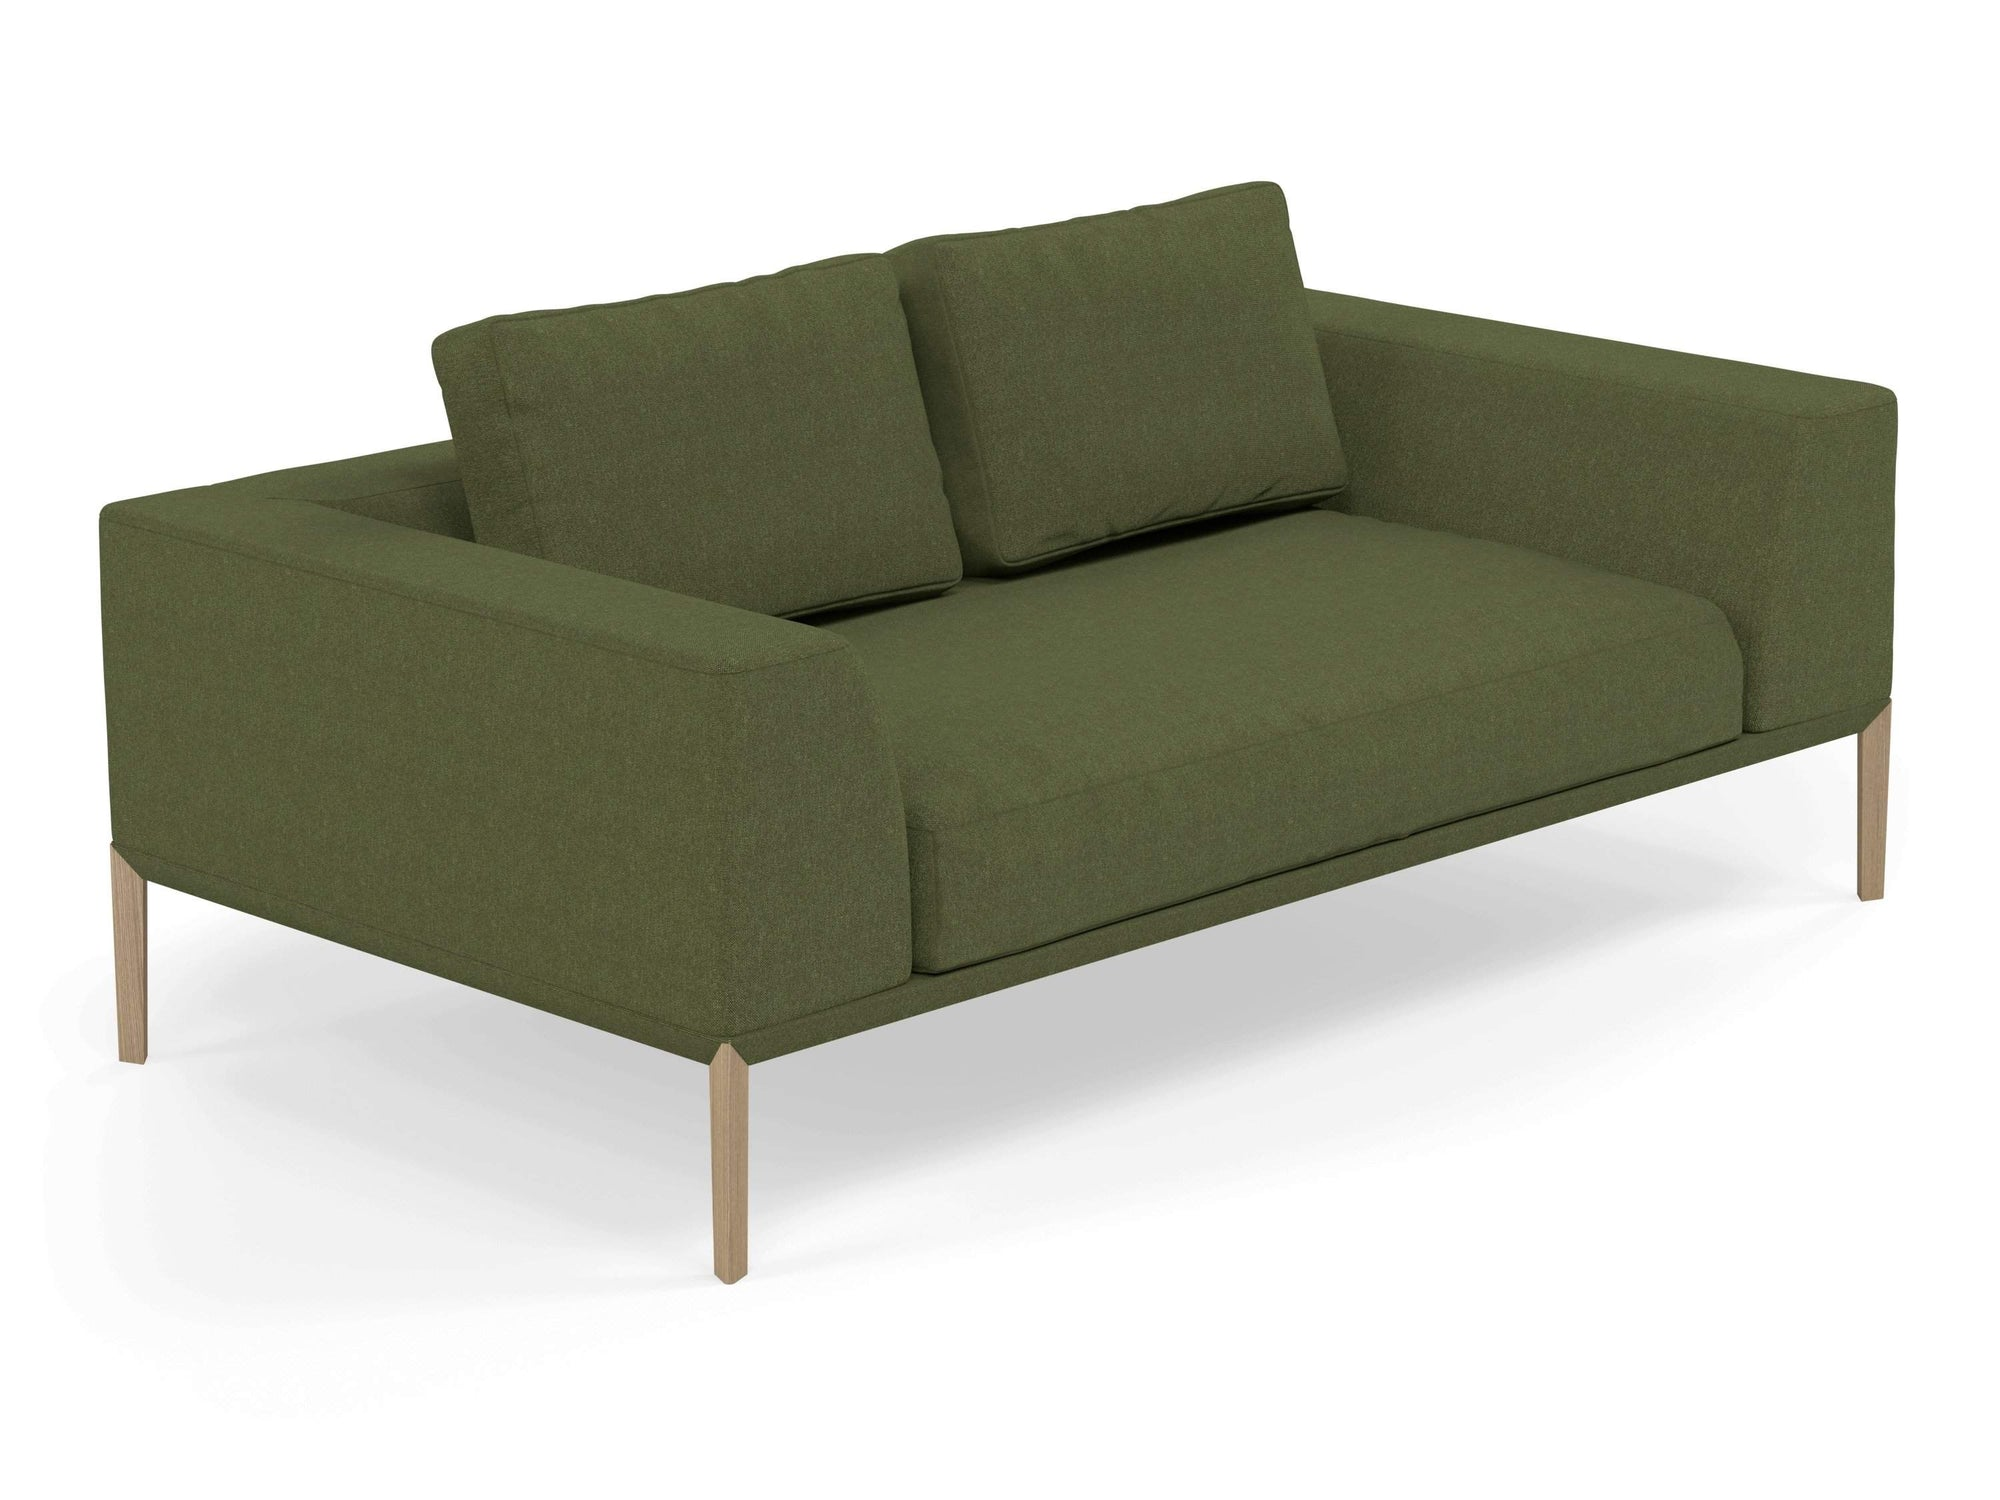 Modern 2 Seater Sofa with 2 Armrests in Seaweed Green Fabric-Natural Oak-Distinct Designs (London) Ltd